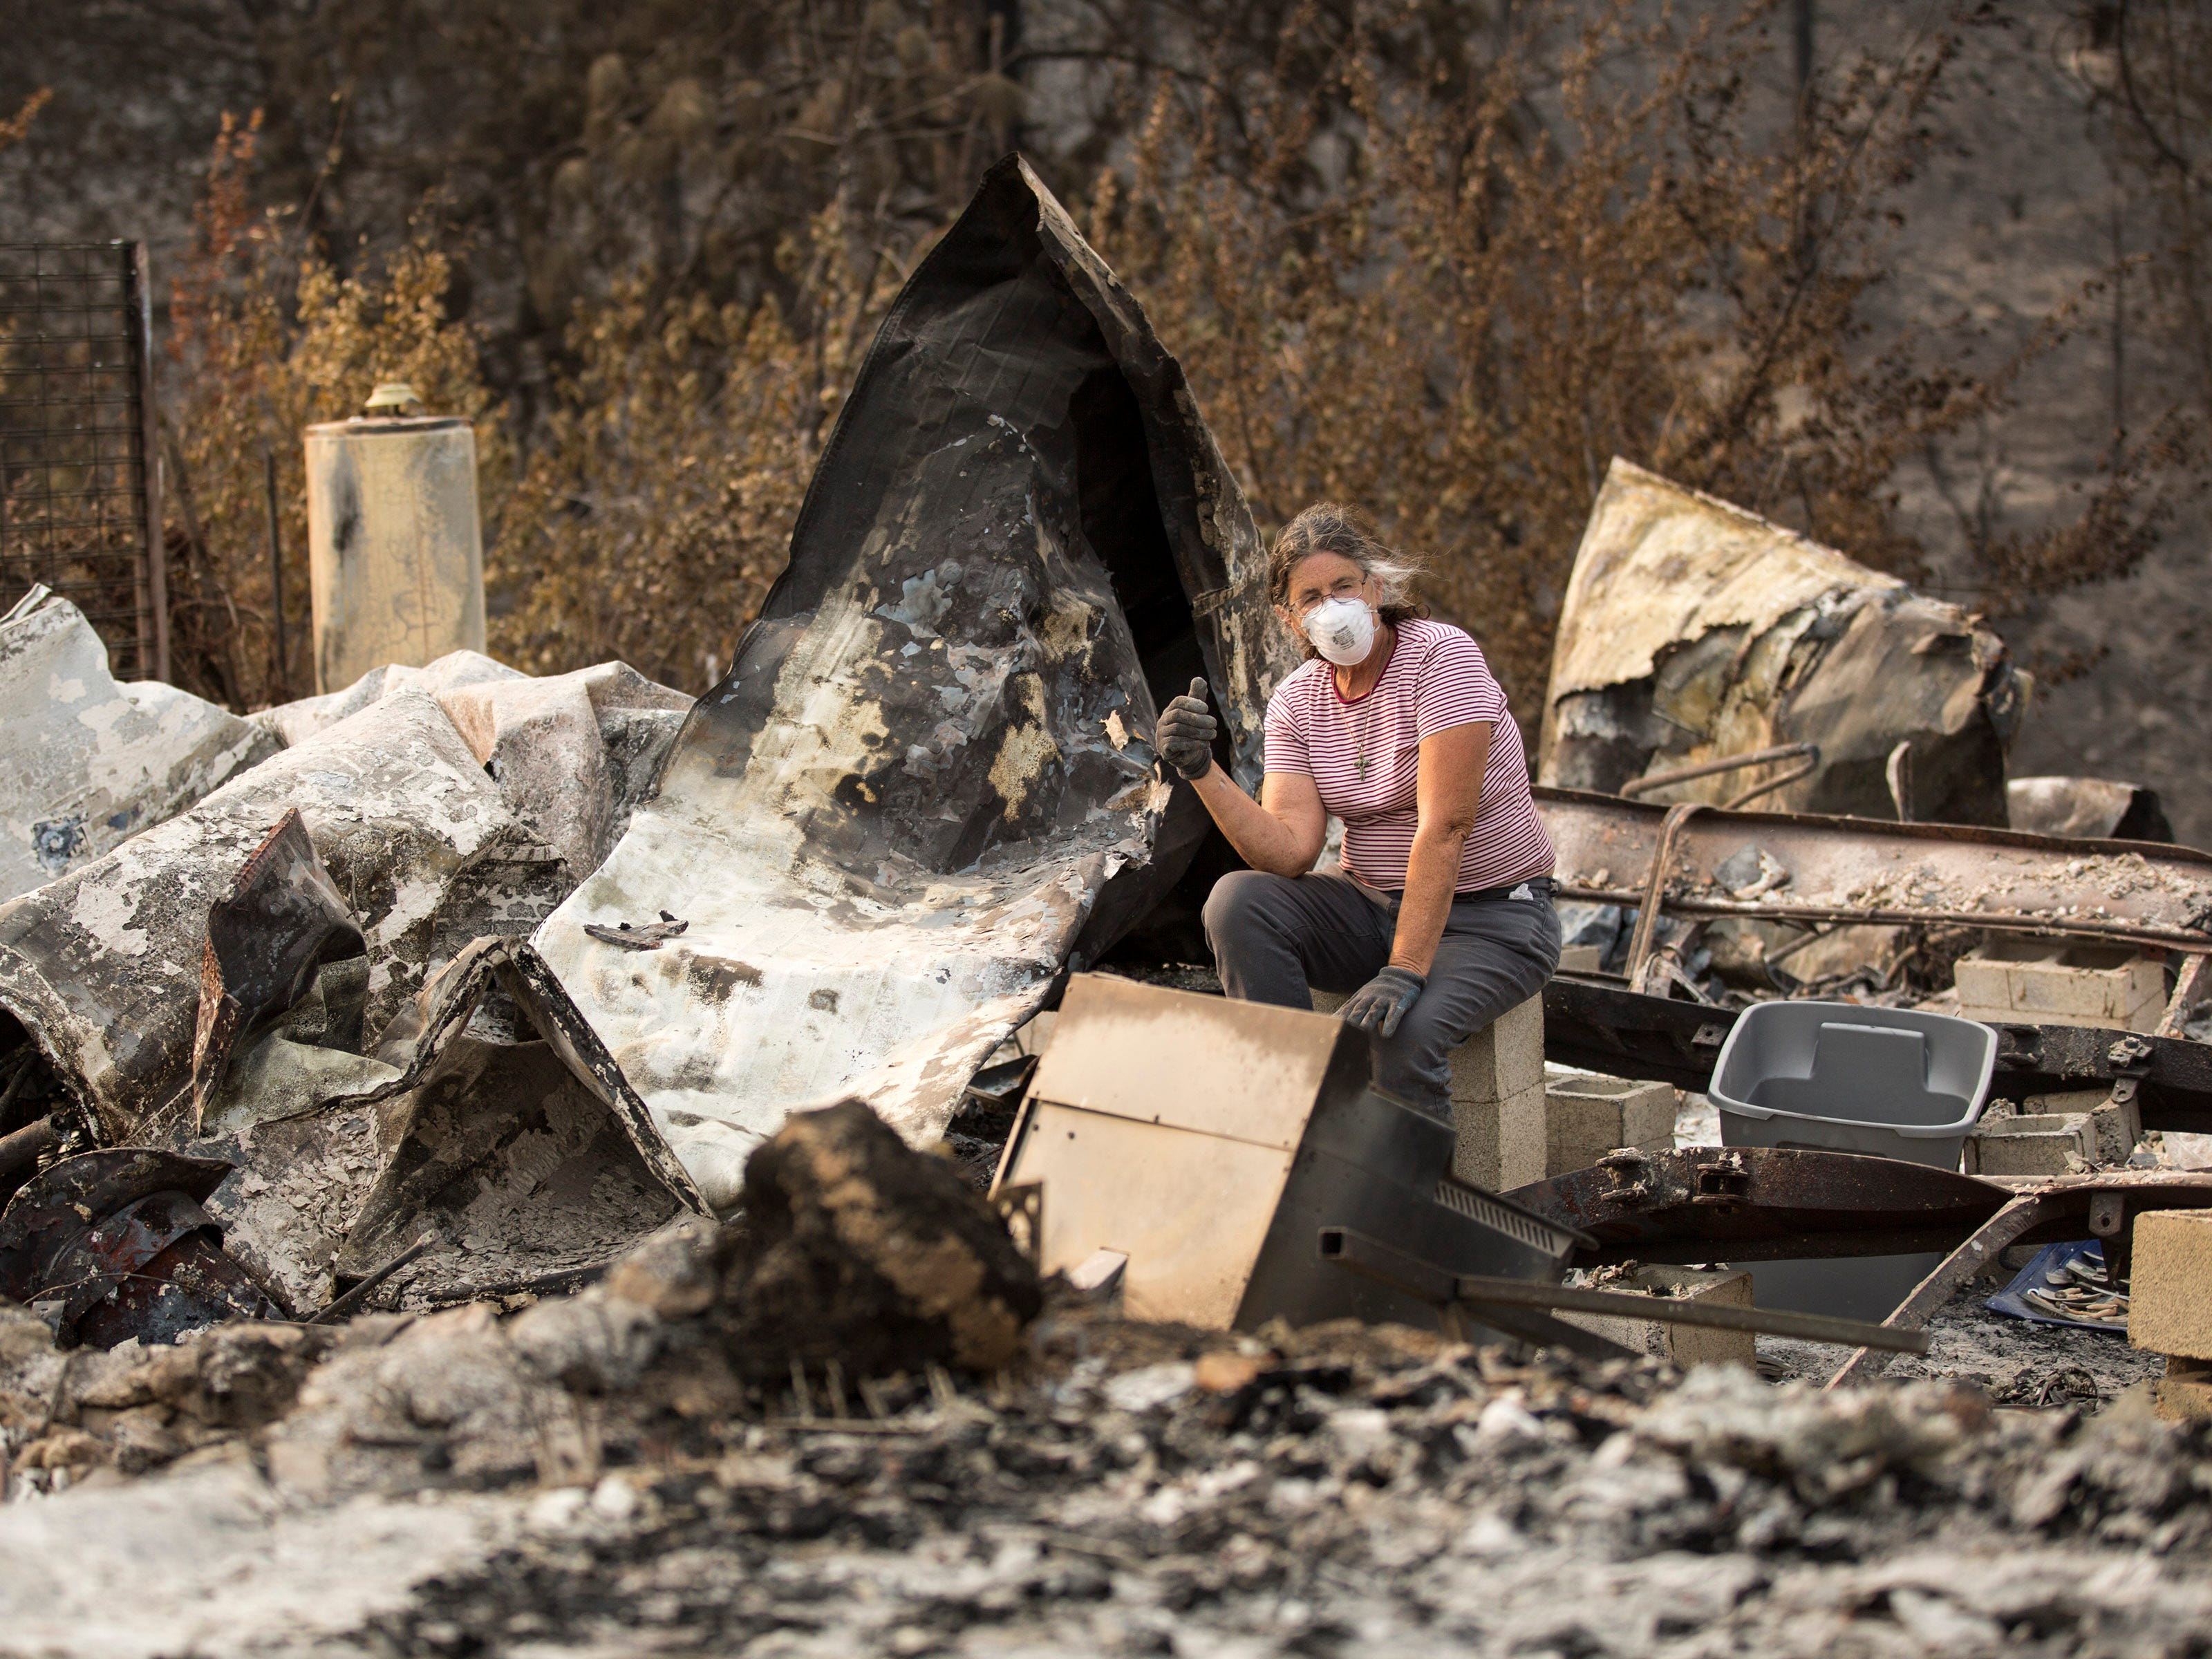 Marci Fernandes, 62 sits among the rubble of her home on Keswick Rd. near Tanstaafl Lane lost to the Carr fire this summer in Keswick, Calif., Saturday, August 26, 2018.